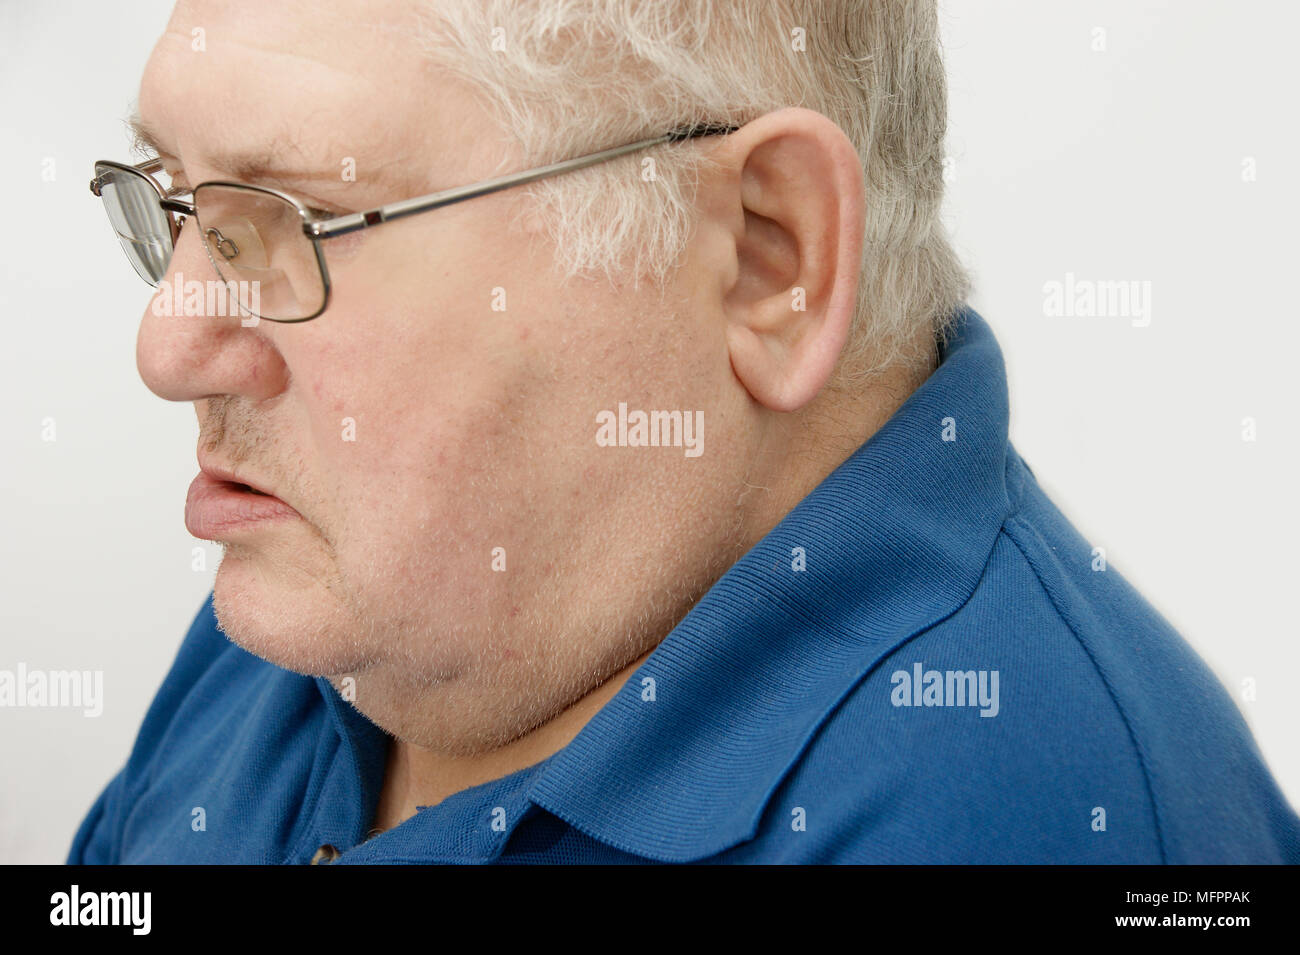 Elderly man suffering from Bell's Palsy Bell's palsy is a form of facial paralysis resulting from a dysfunction of the cranial nerve VII (the facial n - Stock Image